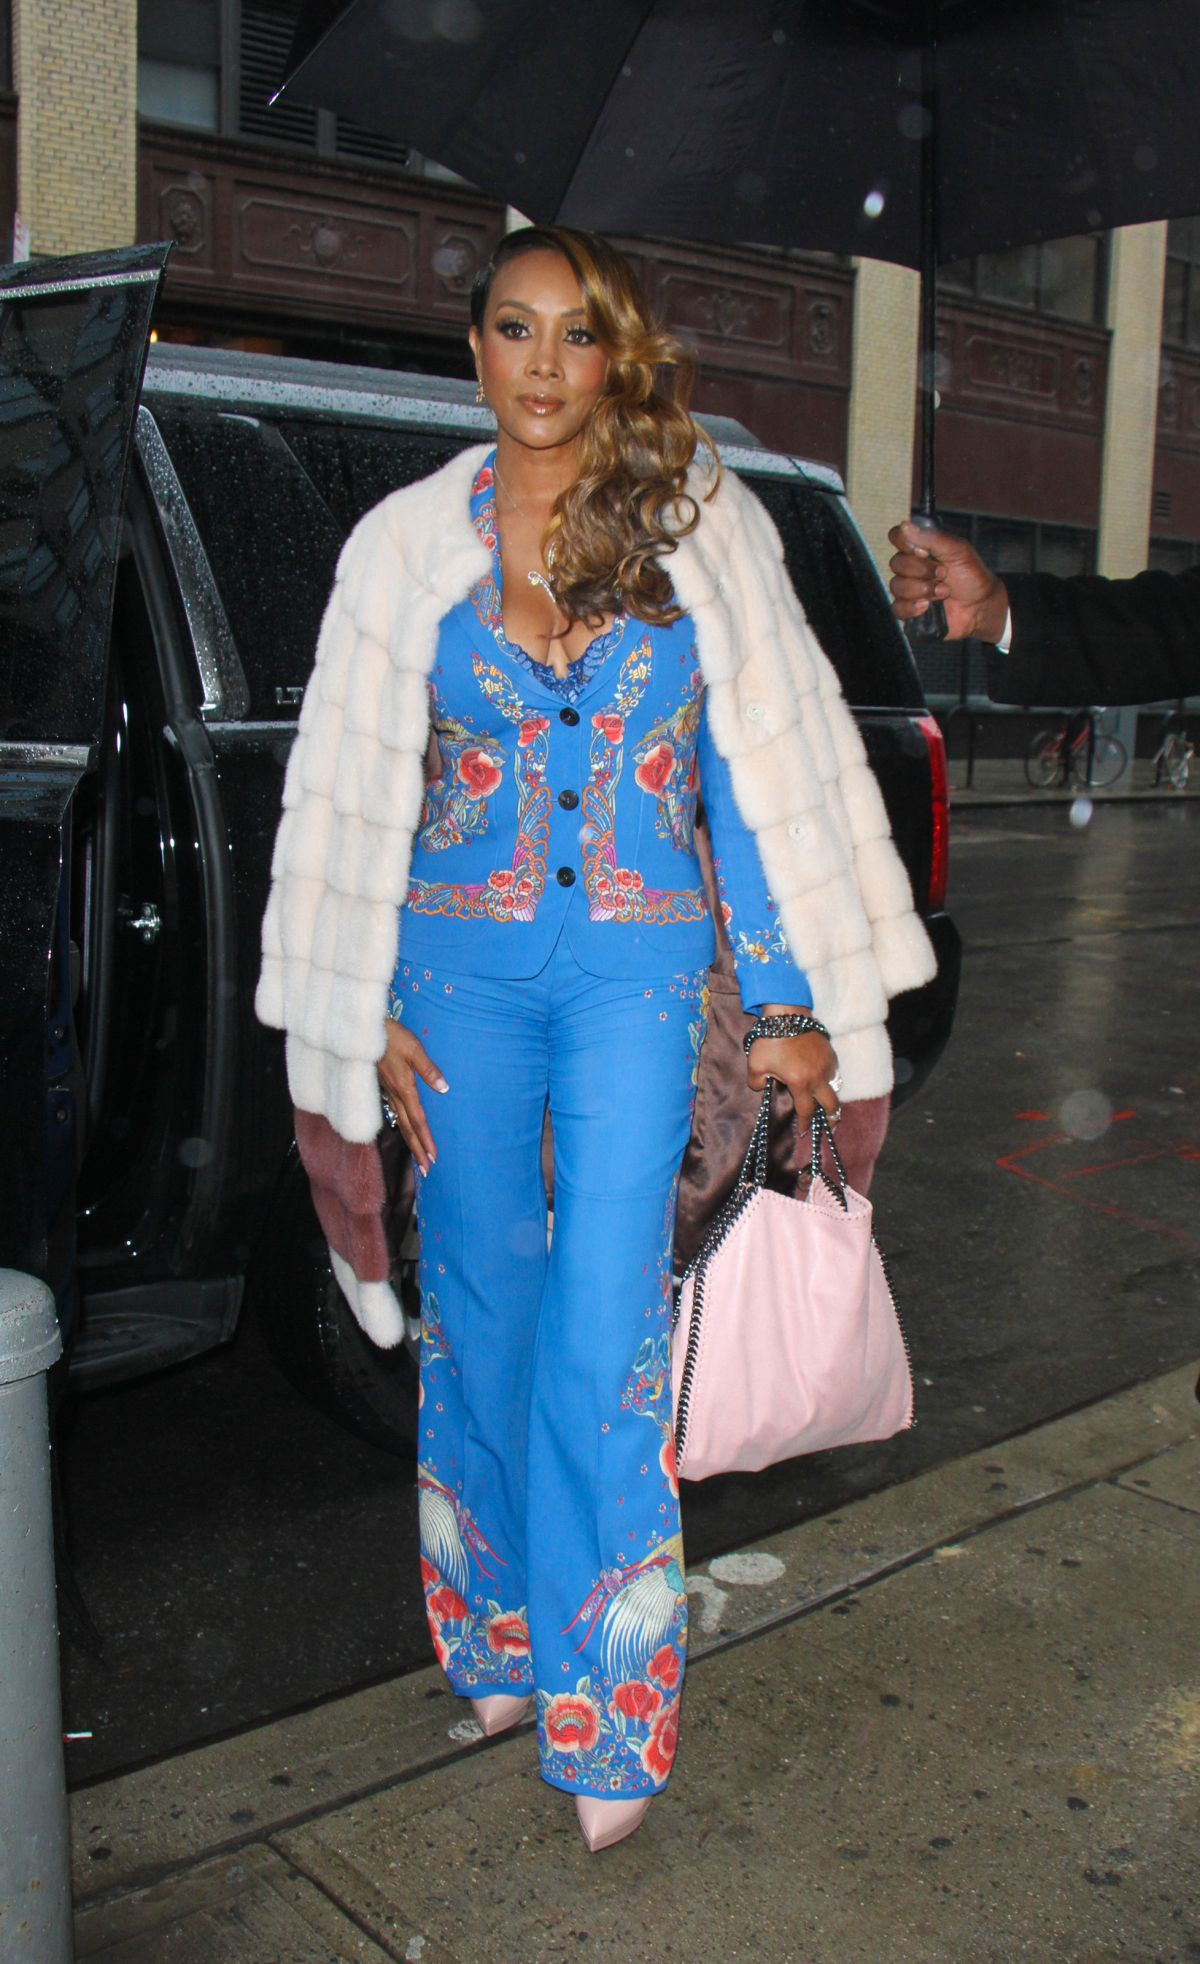 VIVICA FOX Arrives at Wendy Williams Show in New York 01/03/2017   vivica-fox-arrives-at-wendy-williams-show-in-new-york-01-03-2017_7